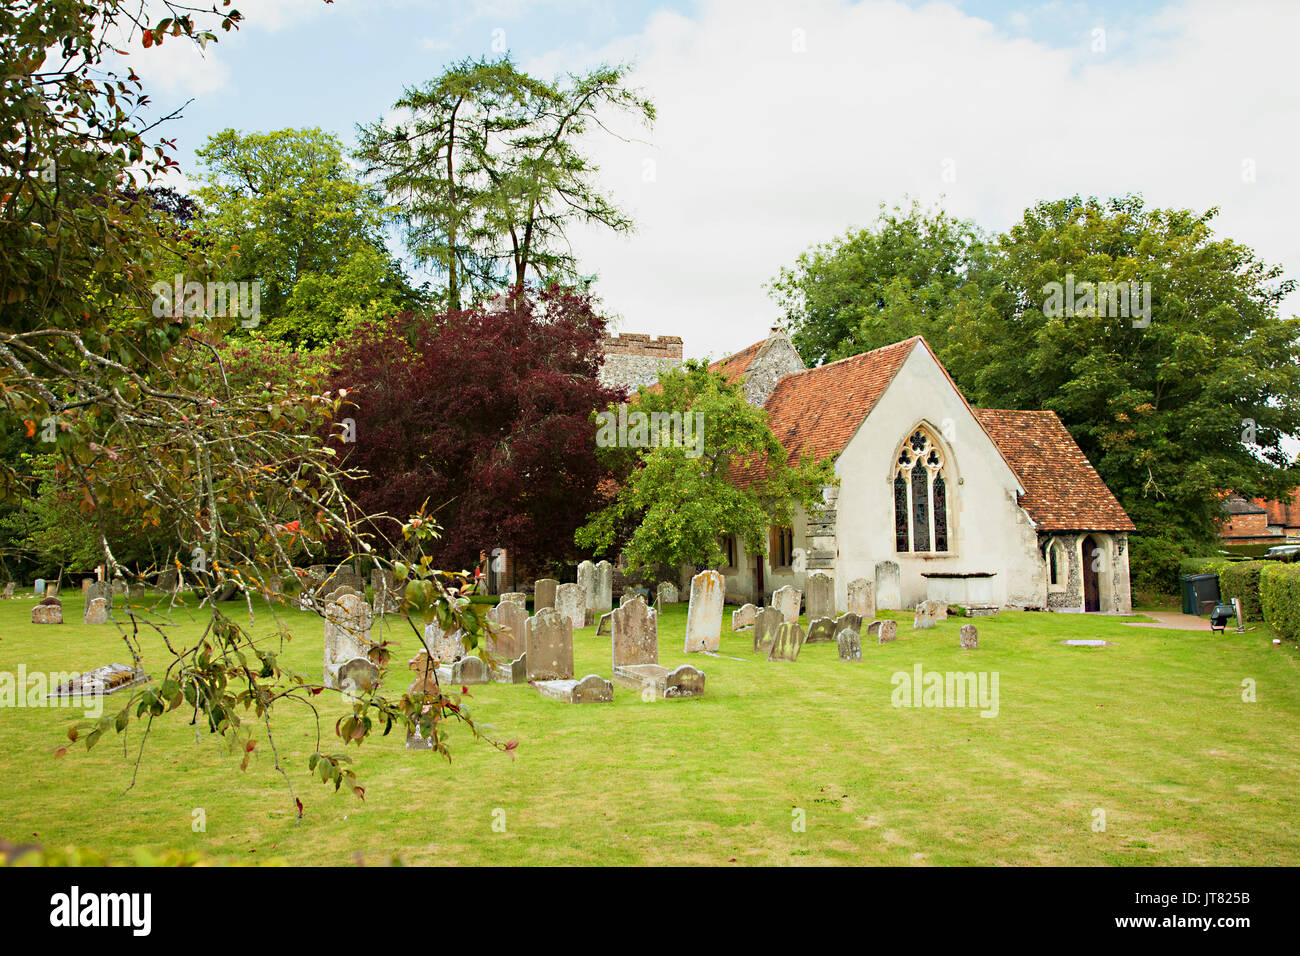 St Marys parish church in the Chilterns village of Turville  Buckinghamshire the setting for the tv series the vicar of Dibley staring Dawn French - Stock Image